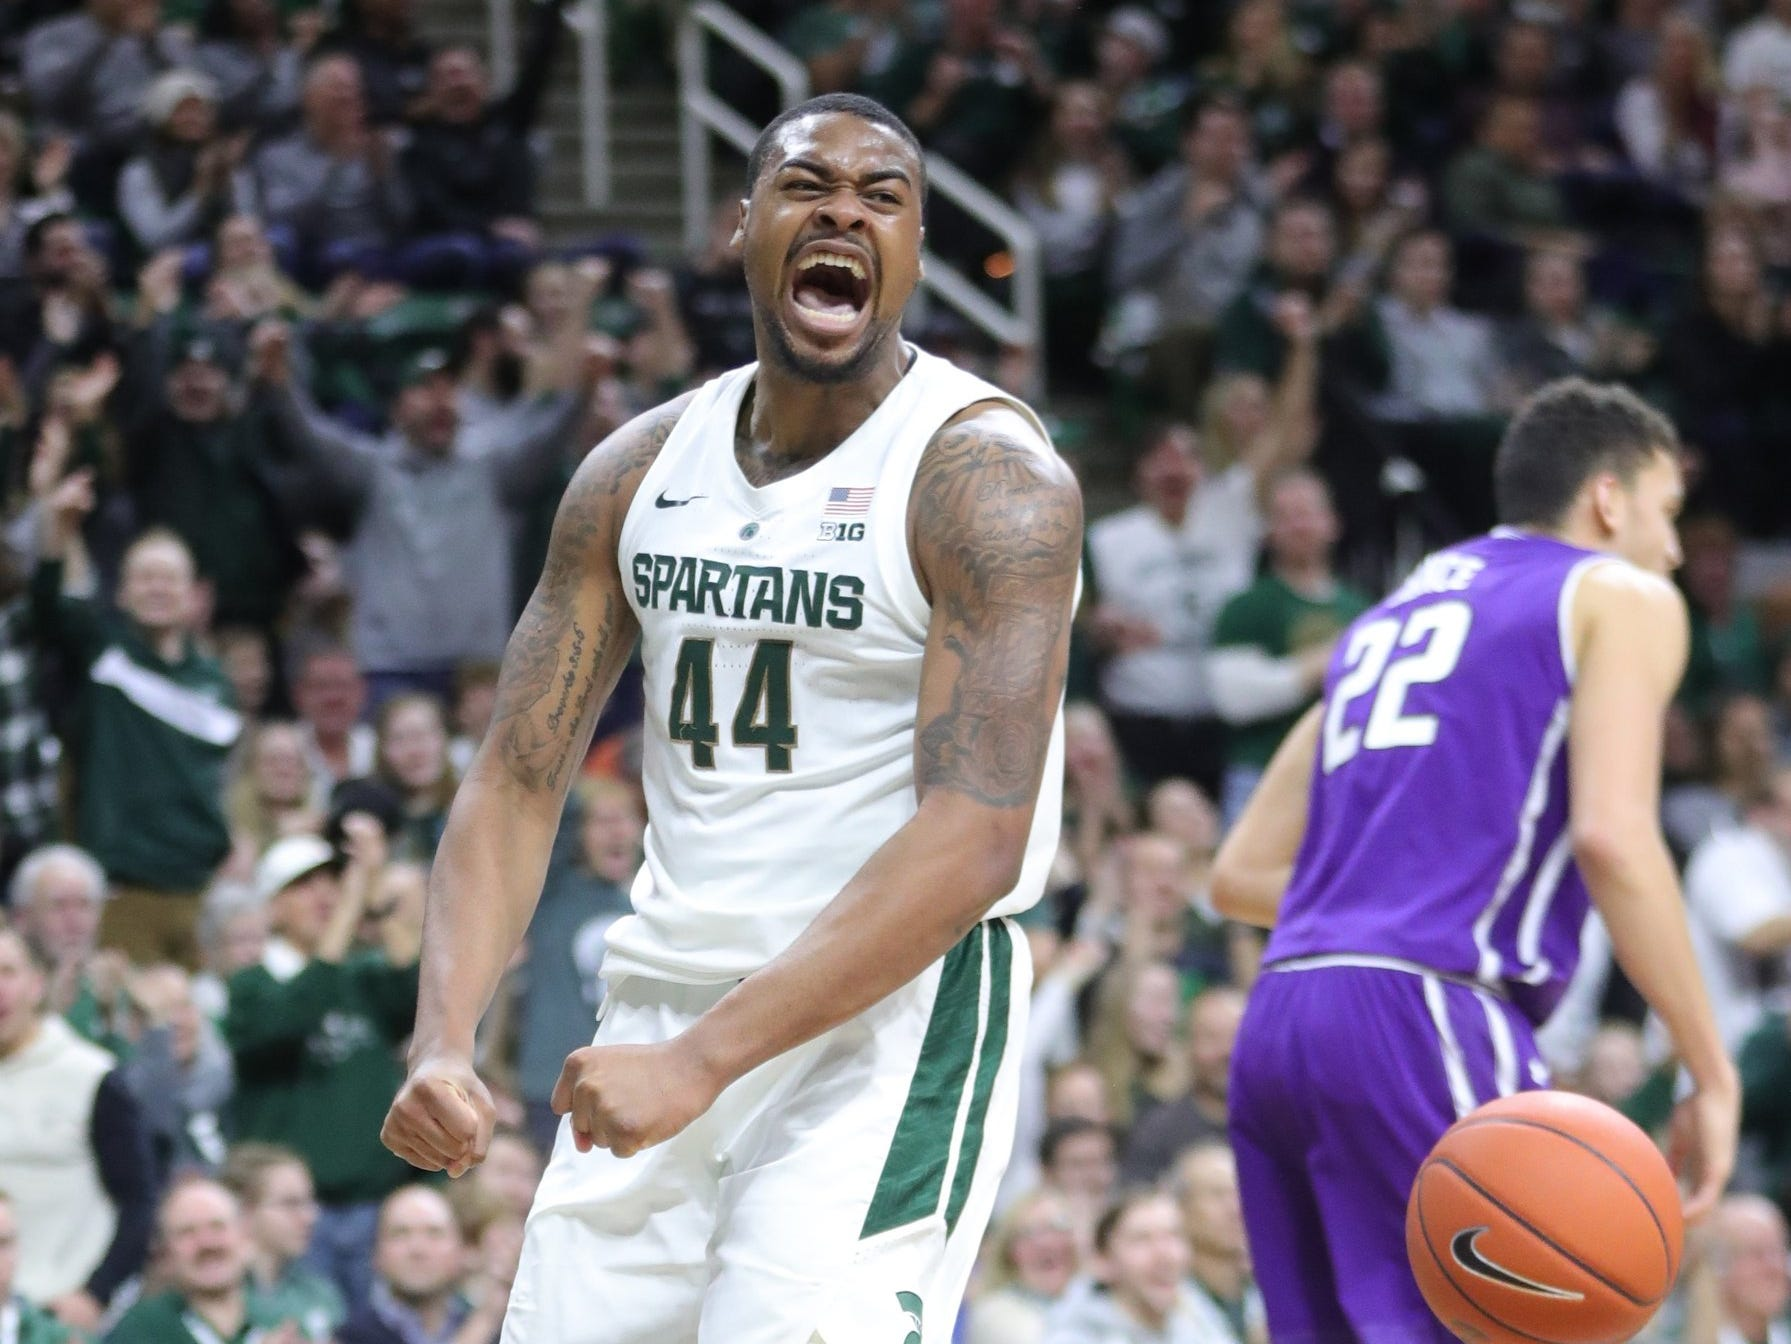 Michigan State forward Nick Ward reacts after a dunk  against Northwestern during first half action Wednesday, January 2, 2019 at the Breslin Center in East Lansing, Mich.